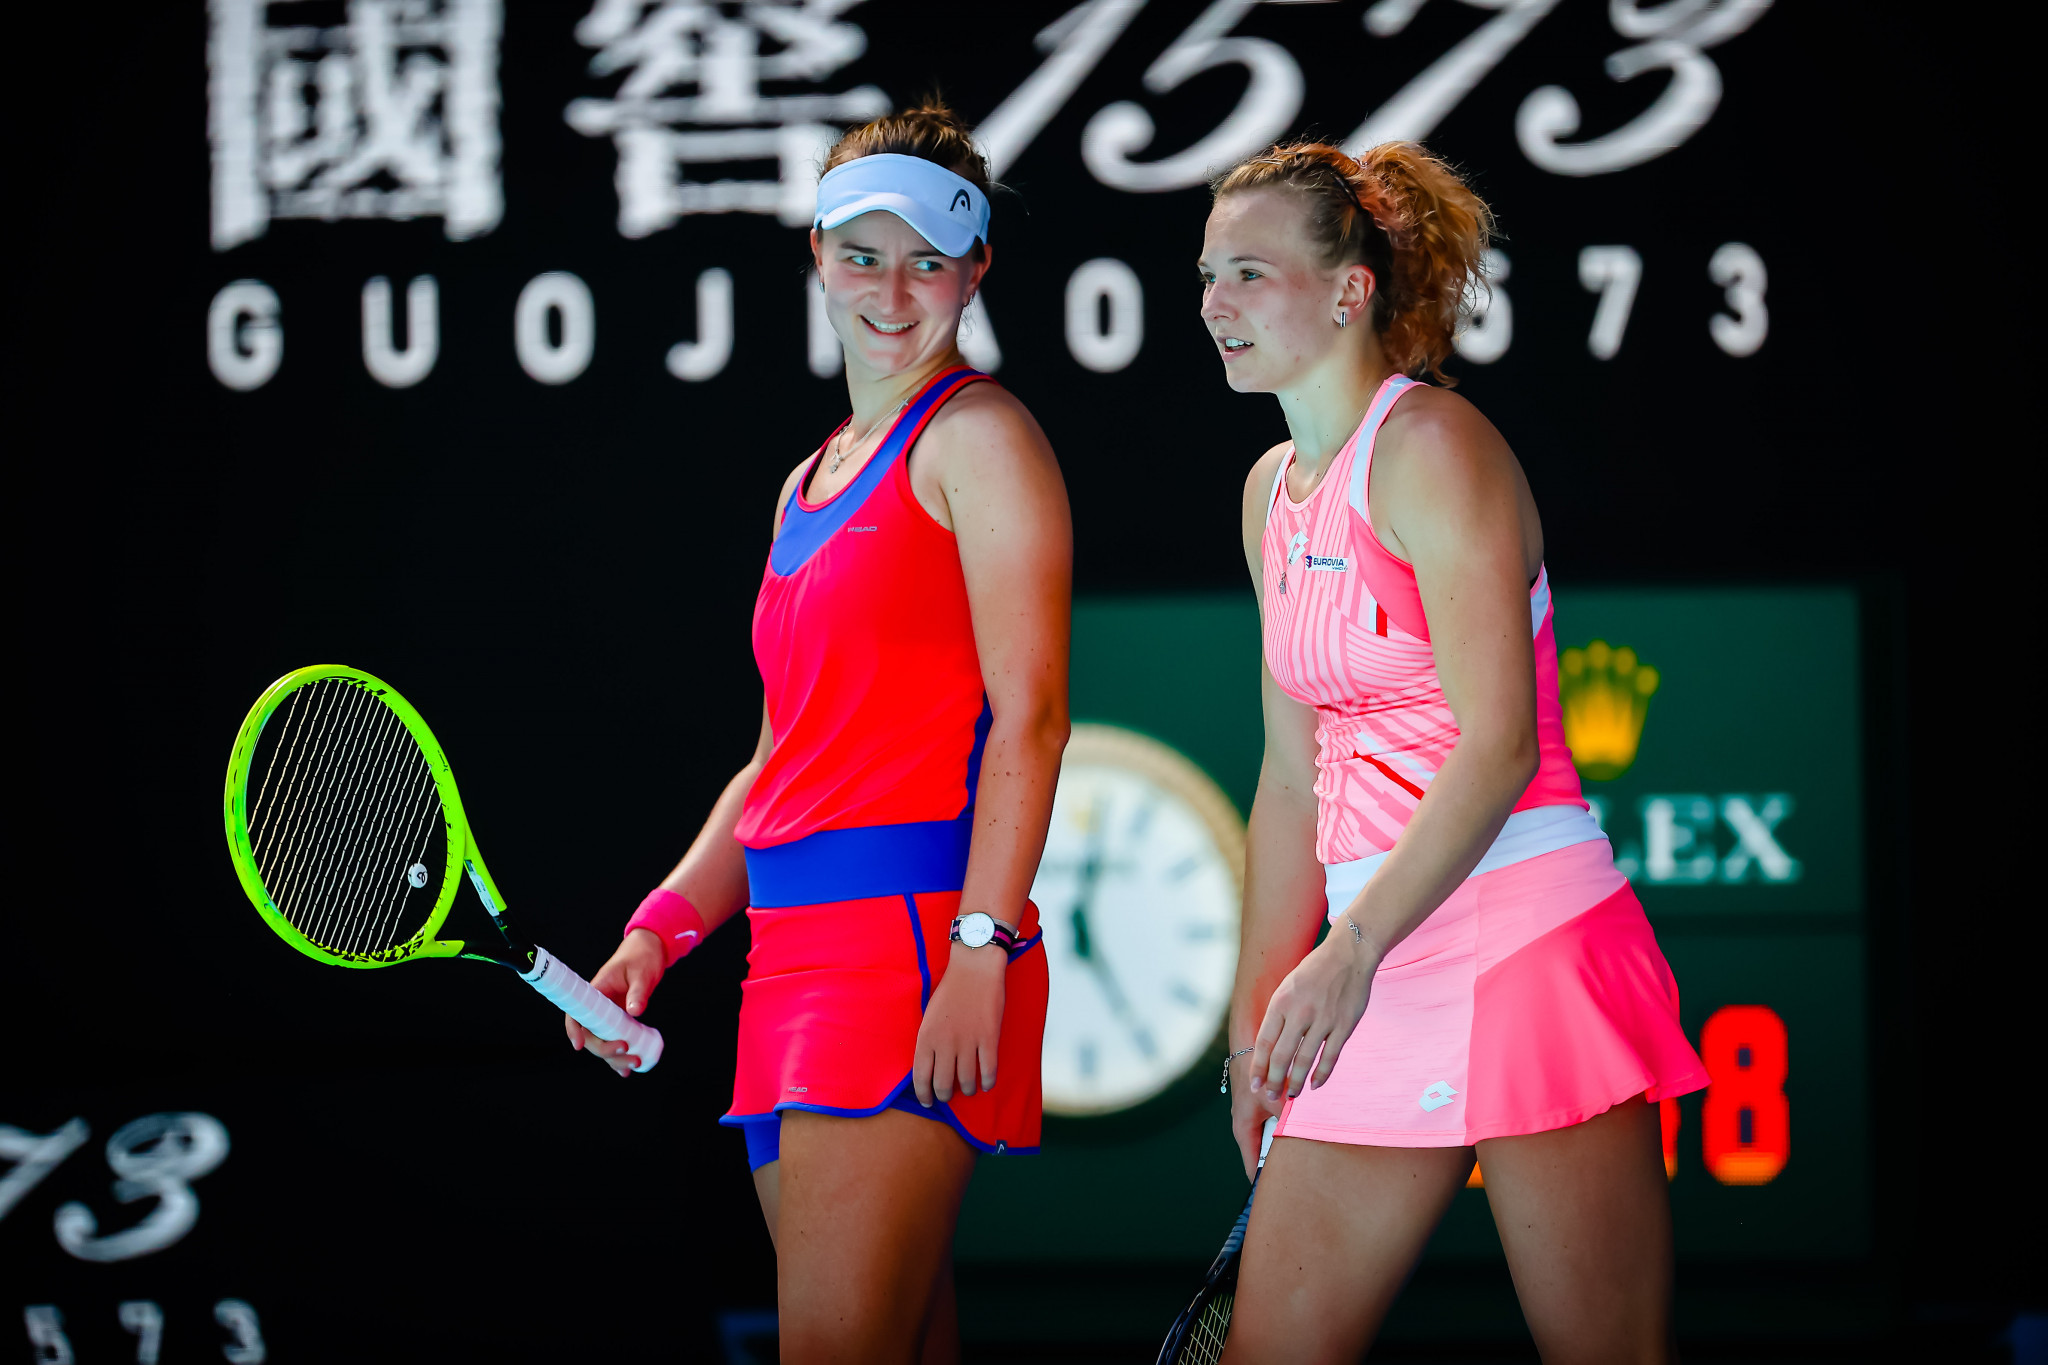 Czech Republic's Barbora Krejcikova and Katerina Siniakova competed in the women's doubles final ©Getty Images